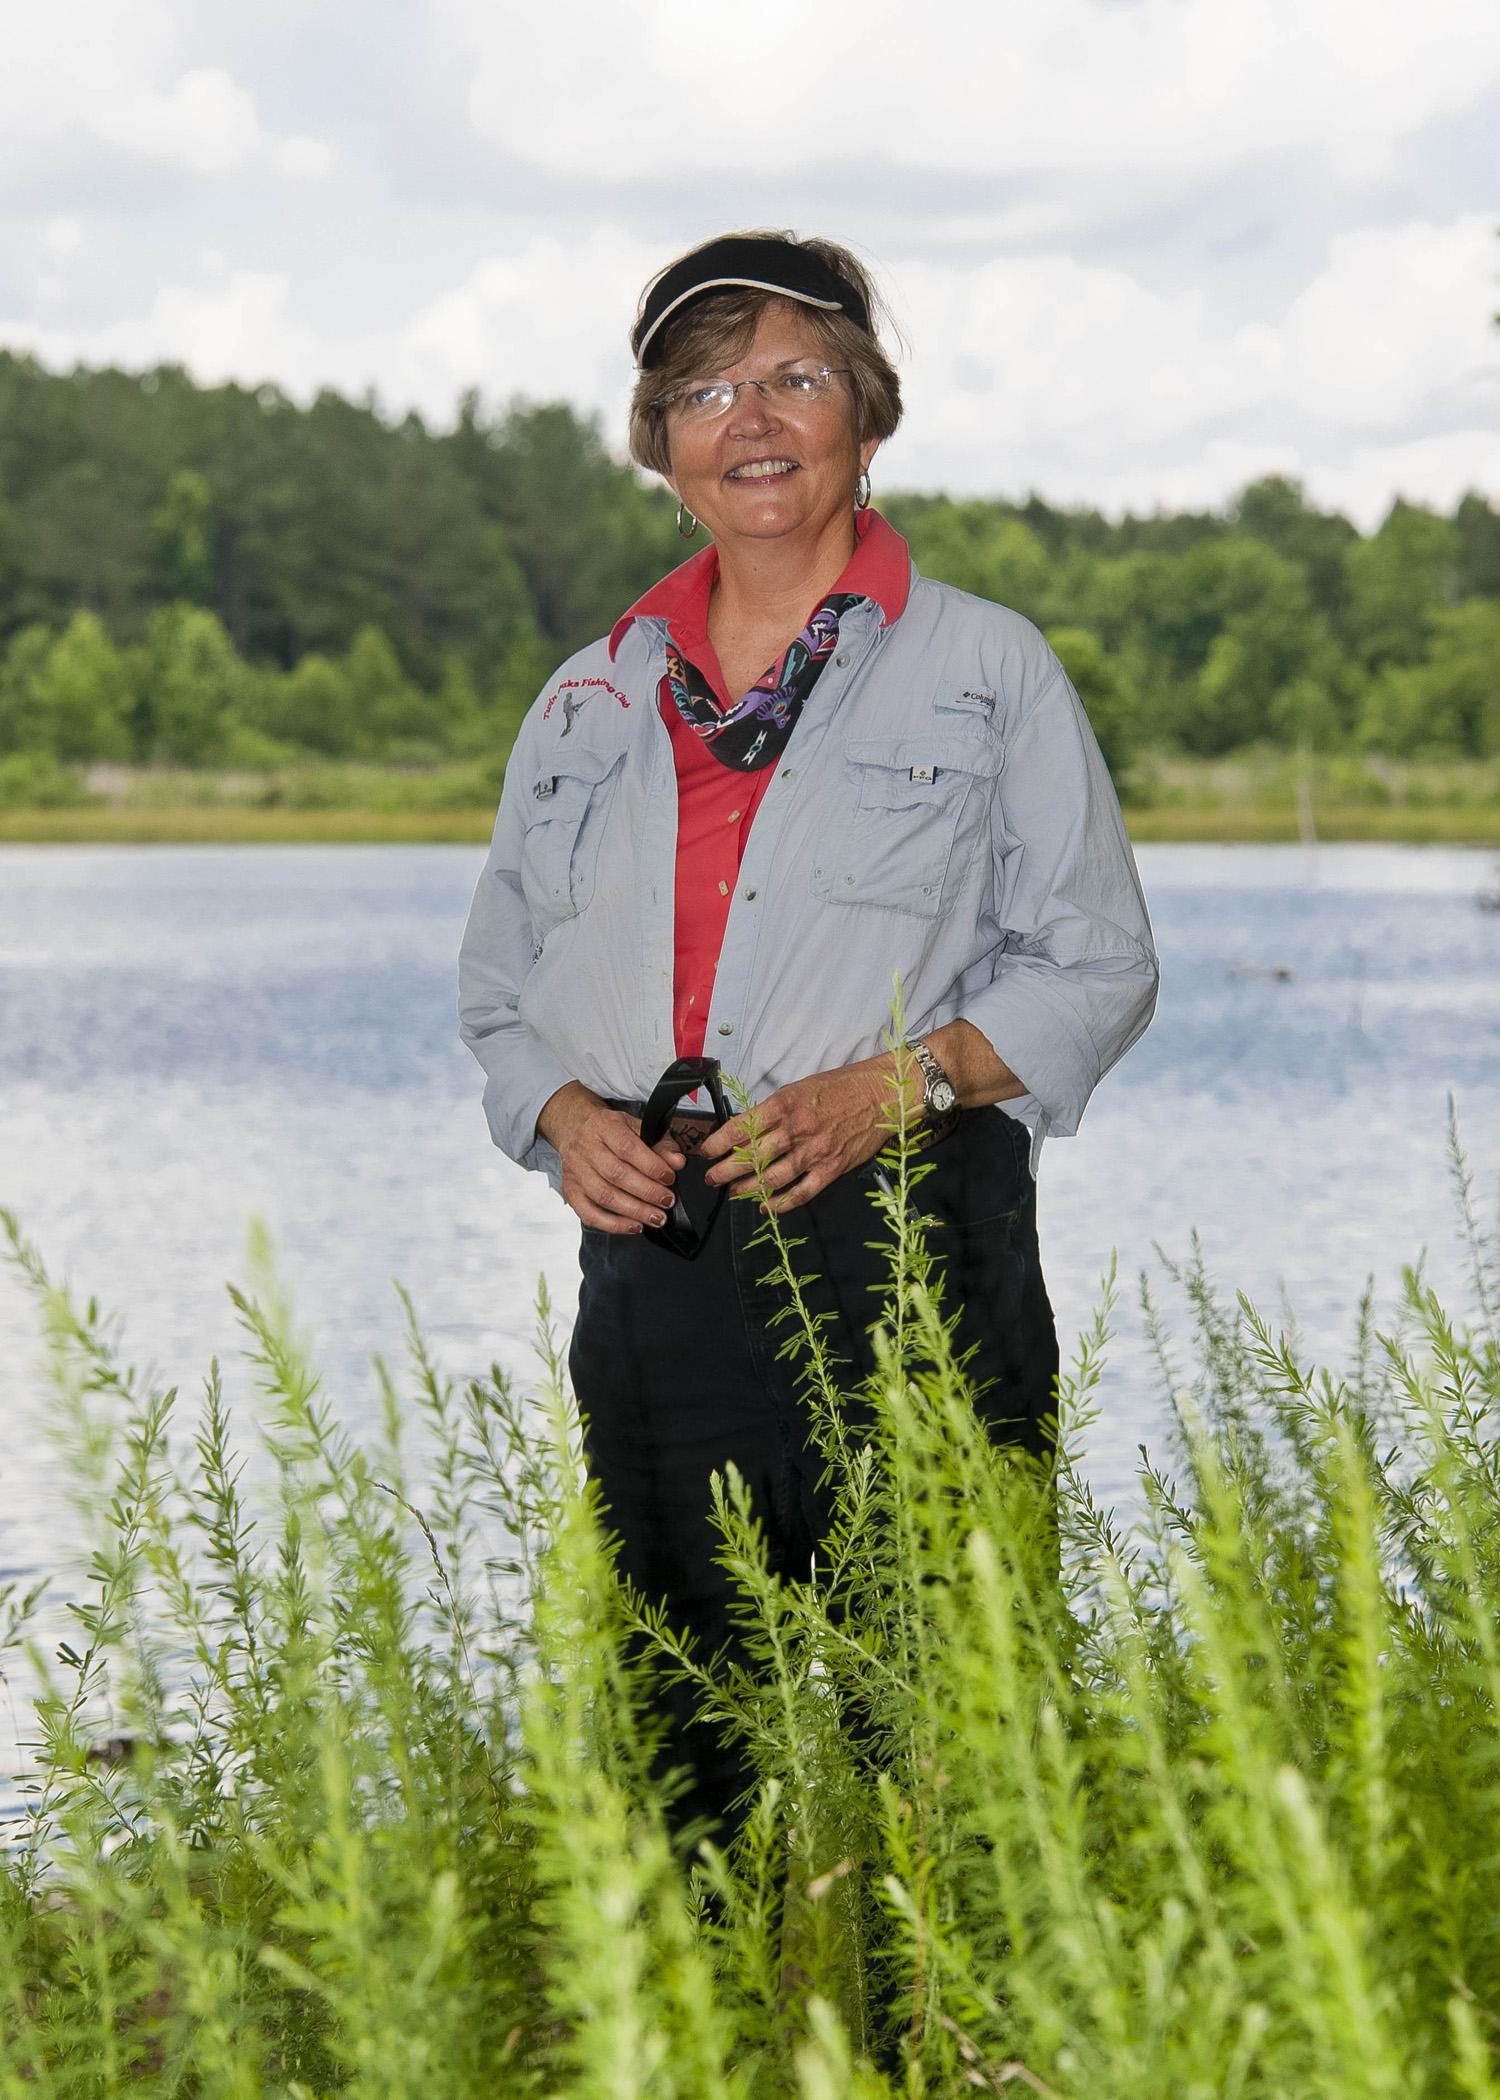 2014 Mississippi Forestry Association Tree Farmer of the Year Patrice O'Brien enjoys managing the land, timber and natural resources at her family's farm in Oakland, Miss., on June 13, 2014. (Photo by MSU Ag Communications/Kevin Hudson)